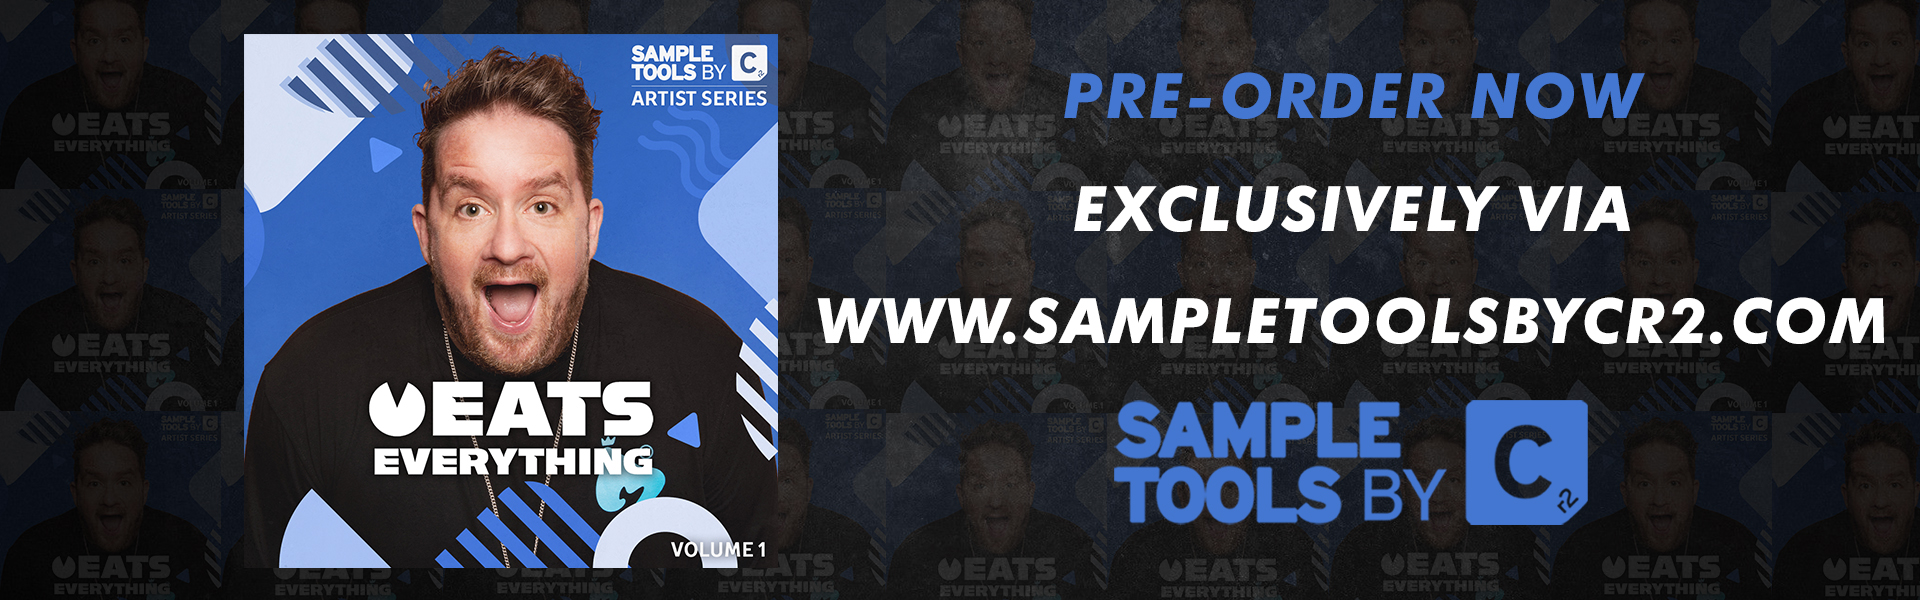 Eats Everything Vol.1 – Available to Pre-Order! [Exclusive to Sample Tools by Cr2]